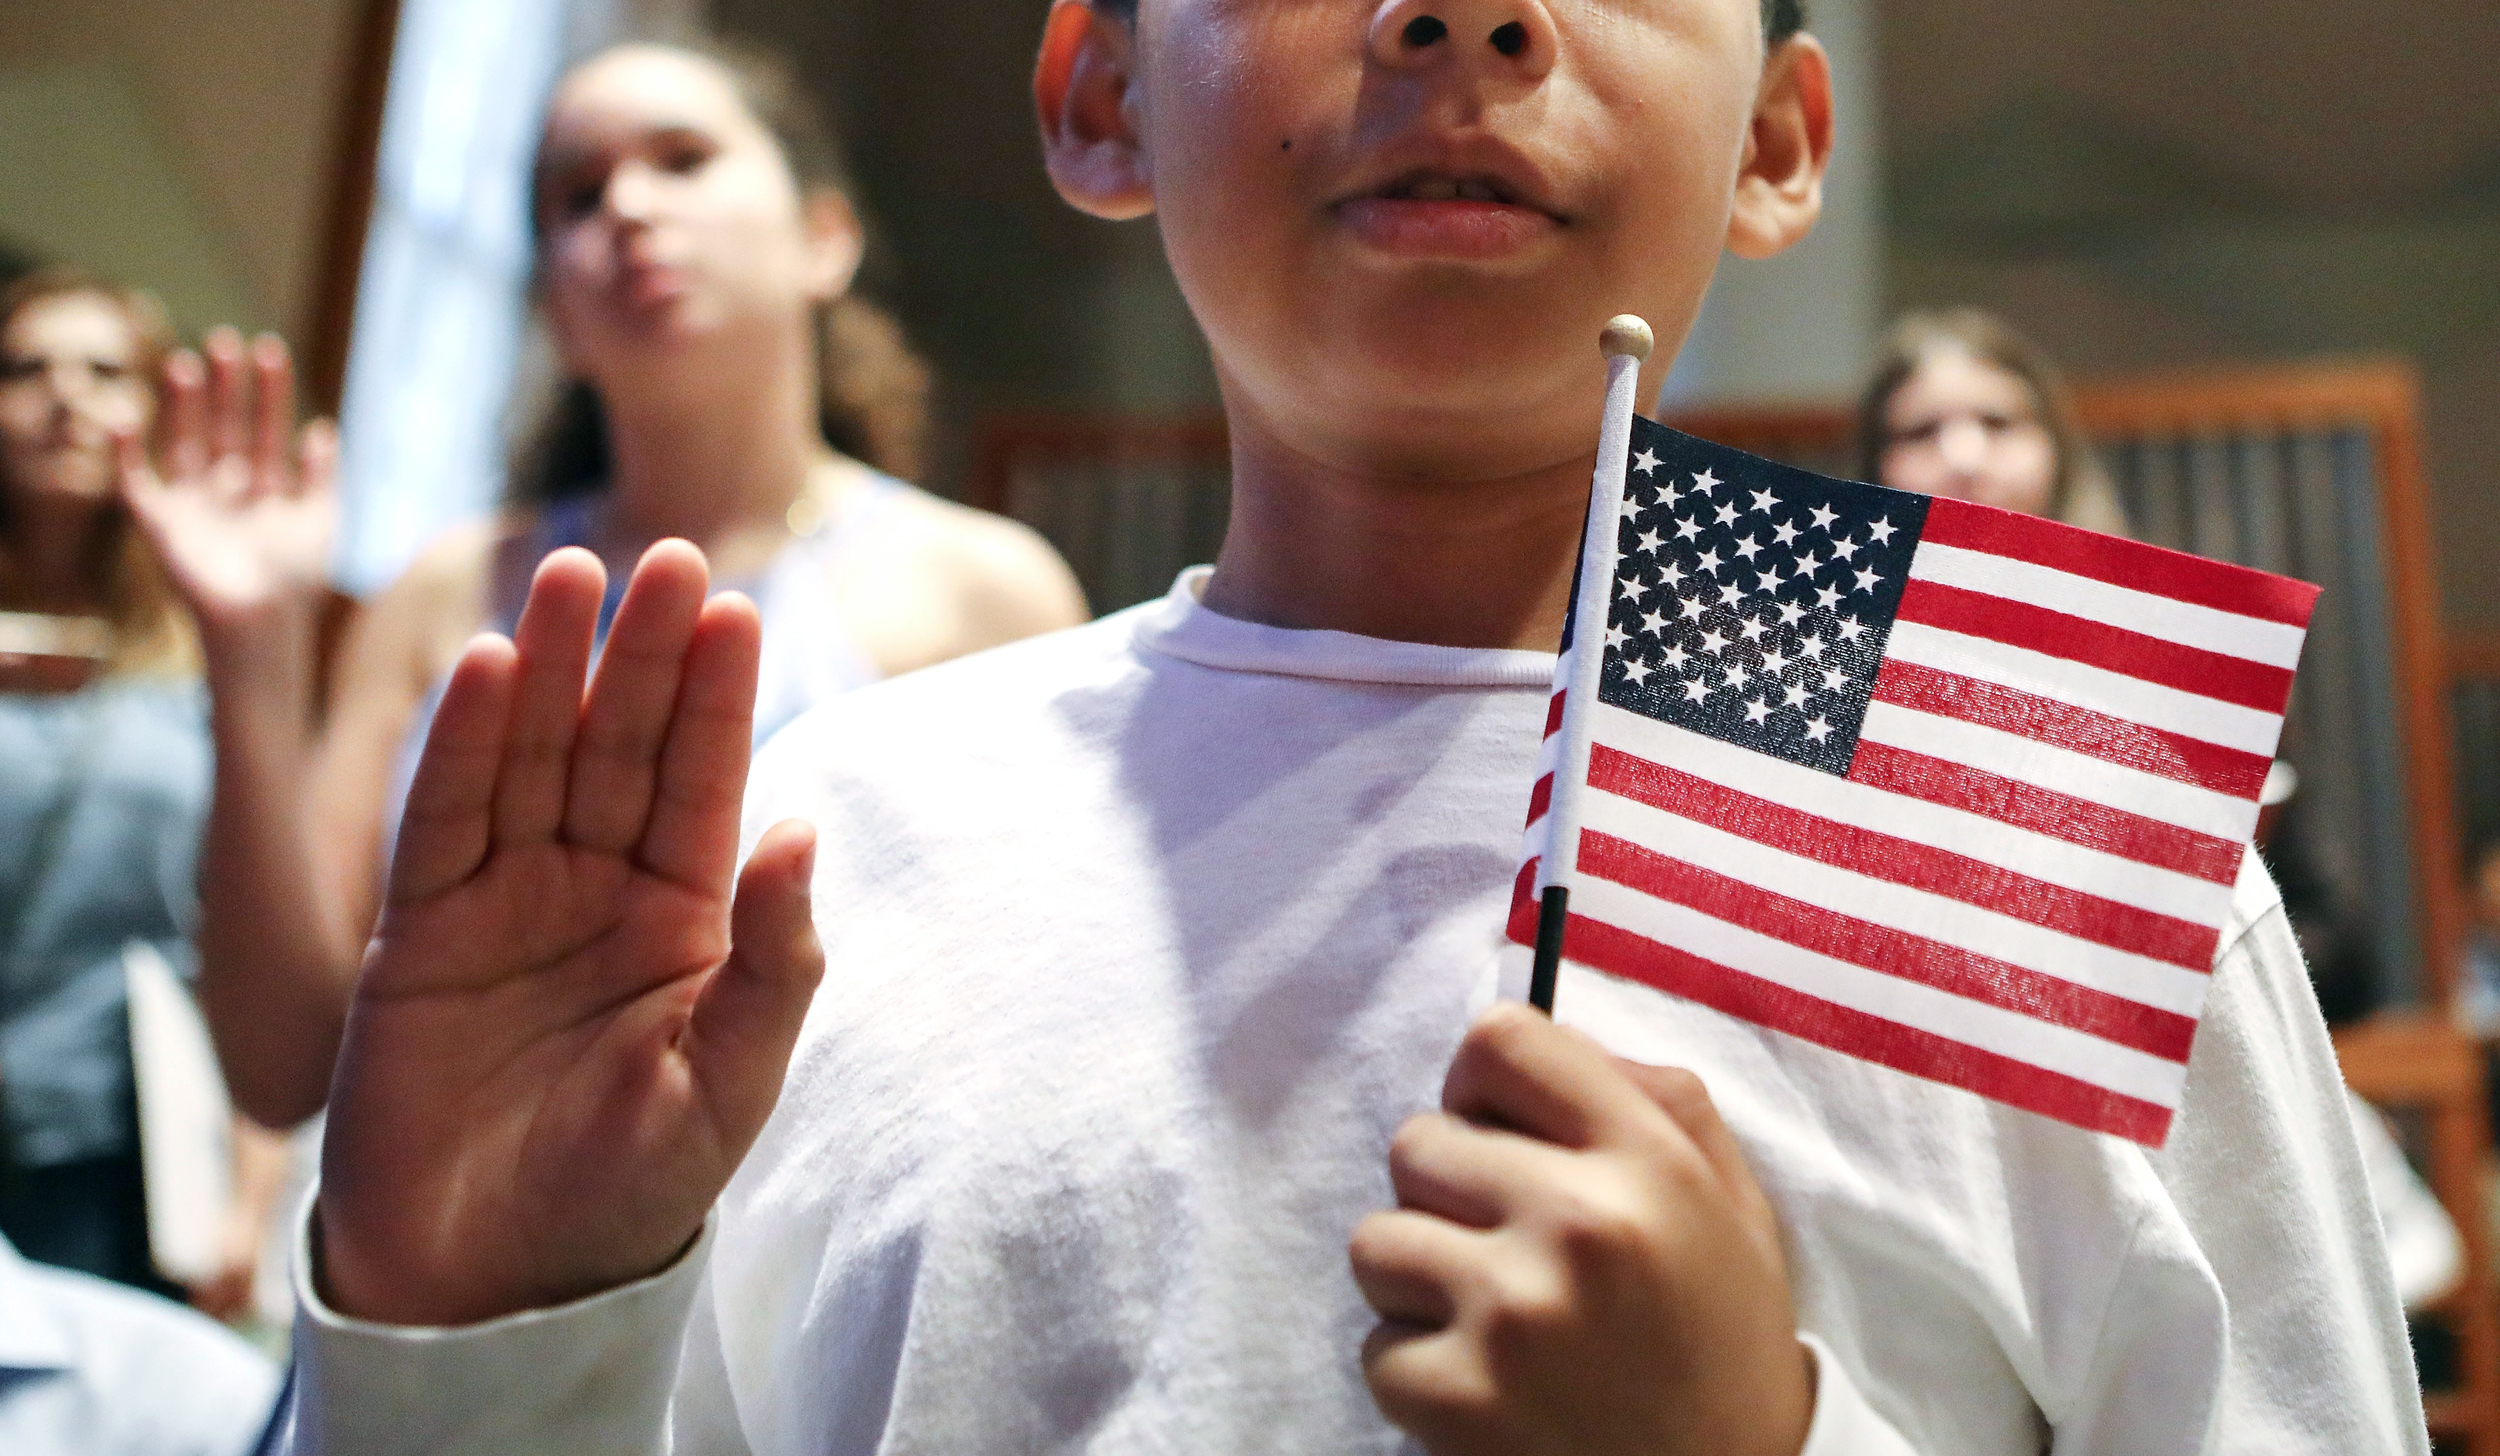 https://media1.s-nbcnews.com/i/newscms/2019_22/2873886/190528-think-naturalization-ceremony-ew-415p_11727dec56f3c20e315dcb4433e573f7.jpg